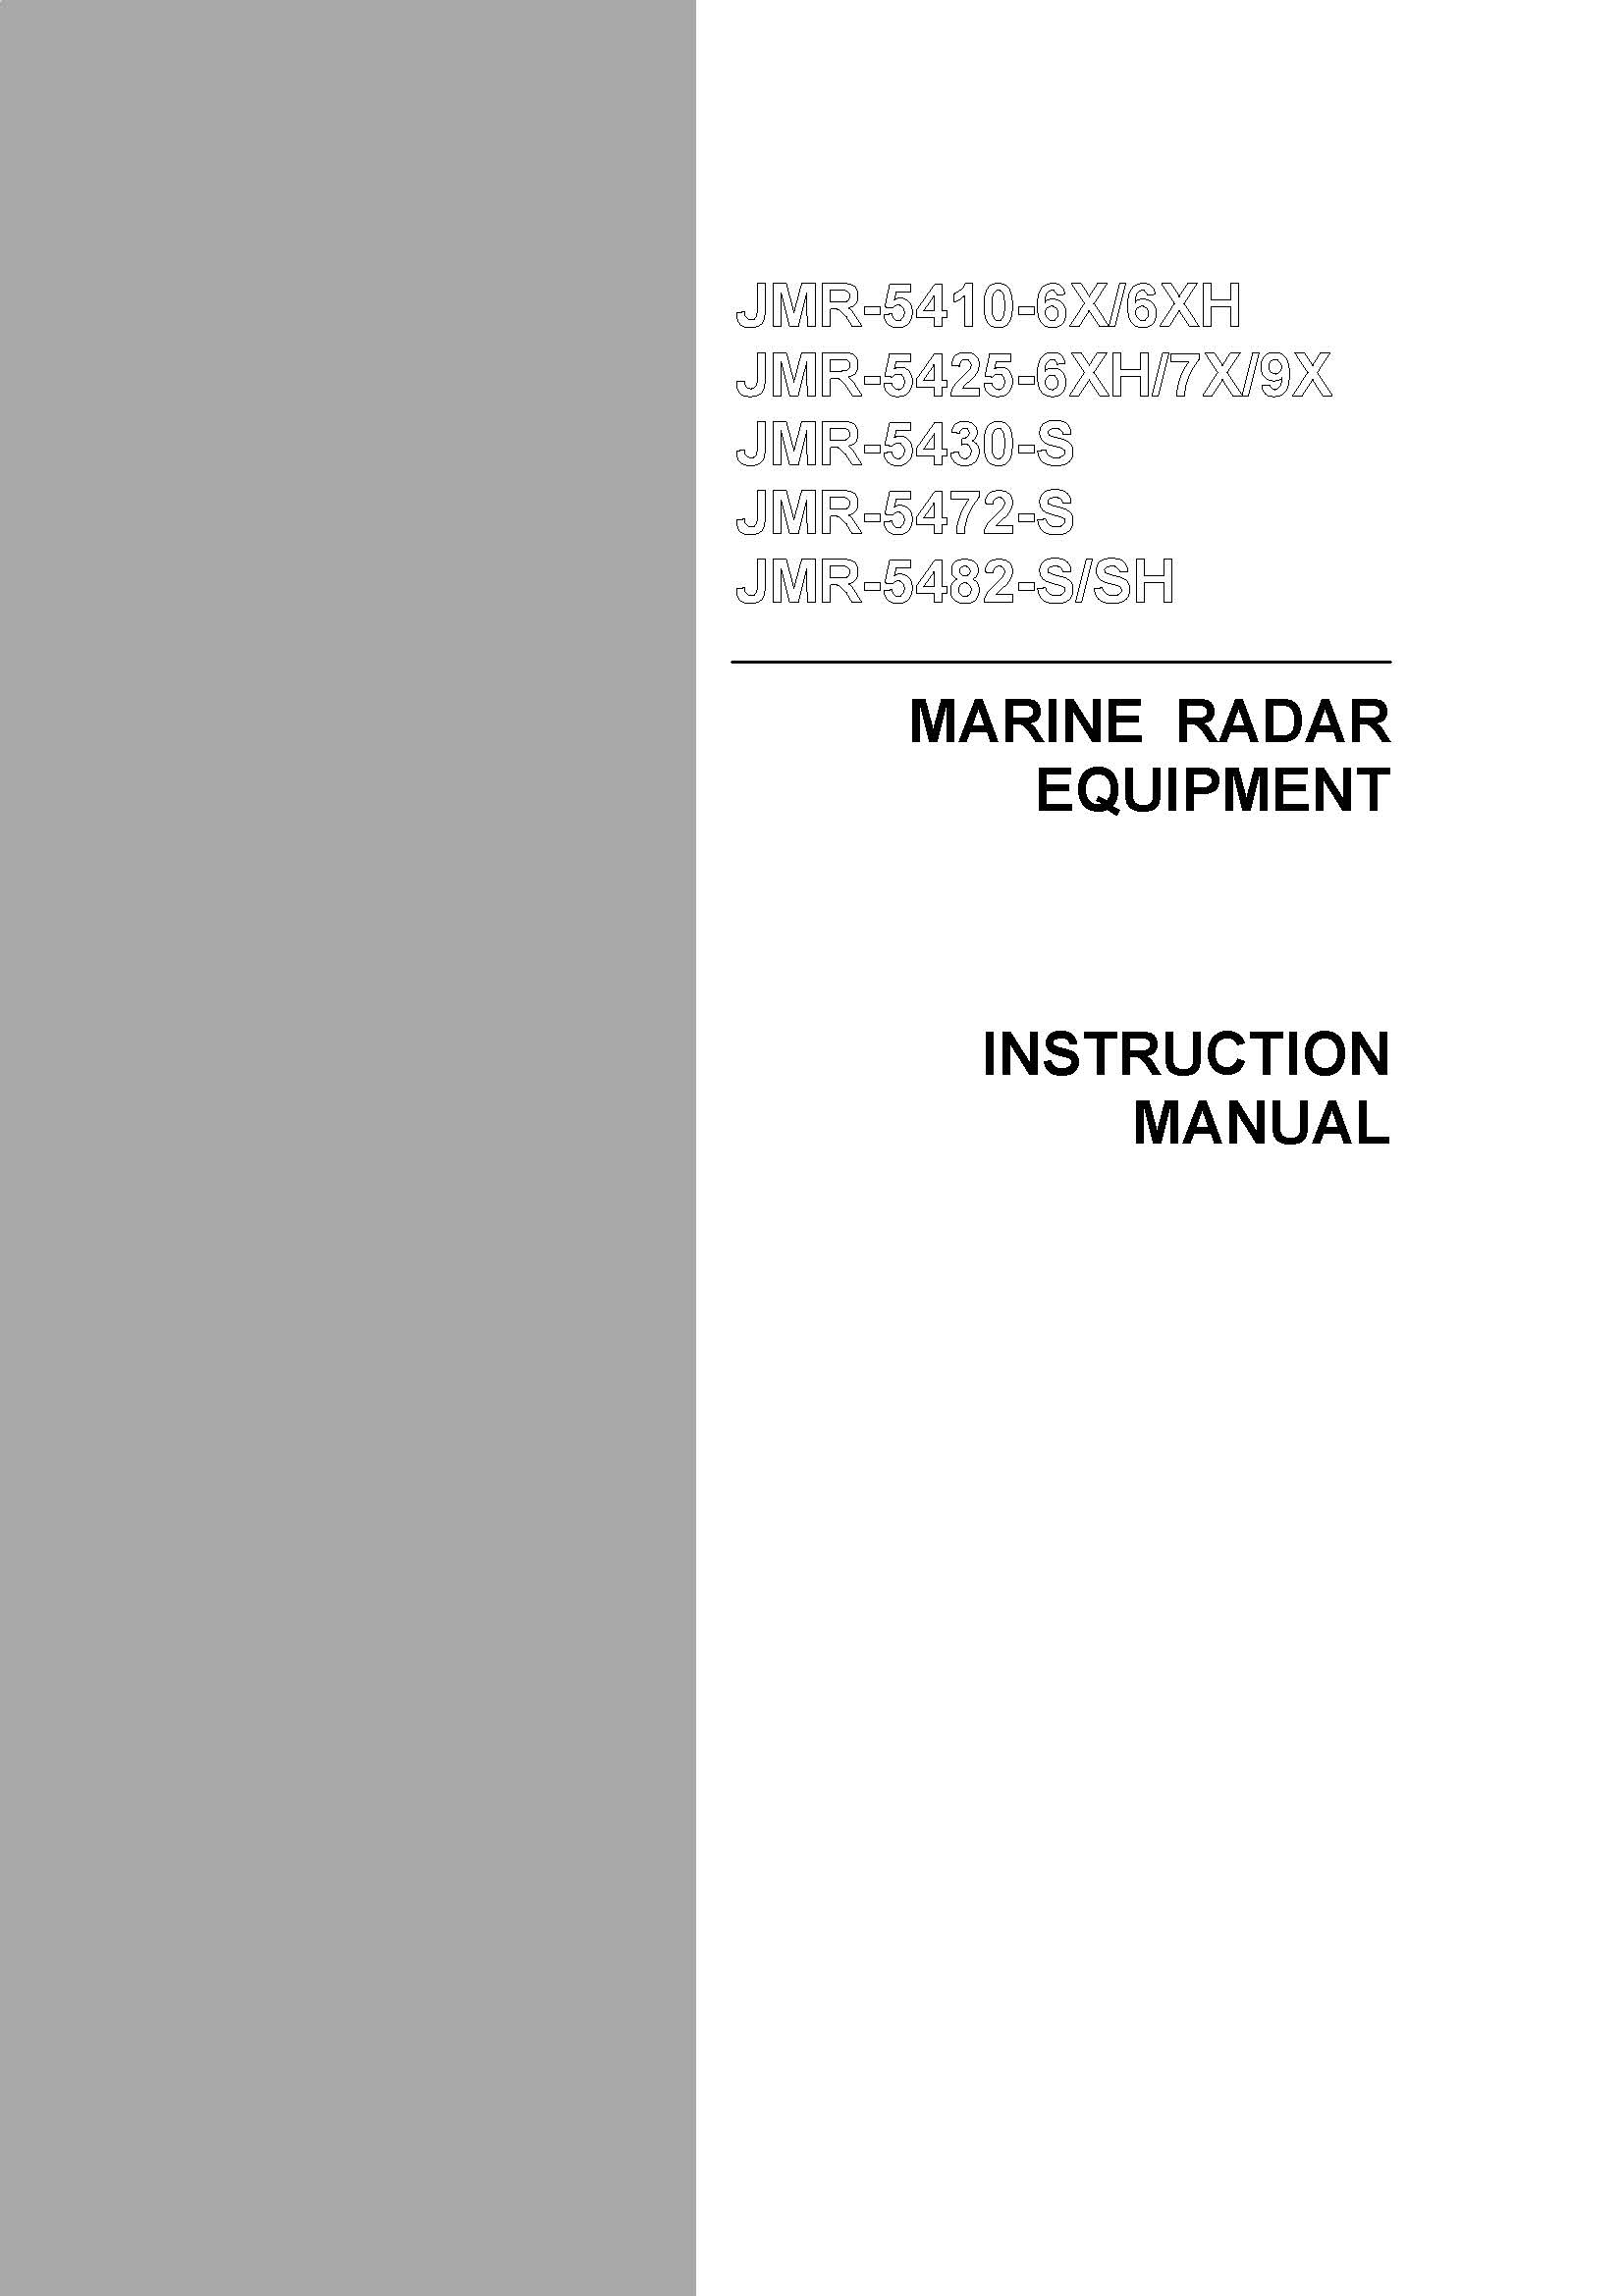 JMR 5400 InstructionManual frontpage